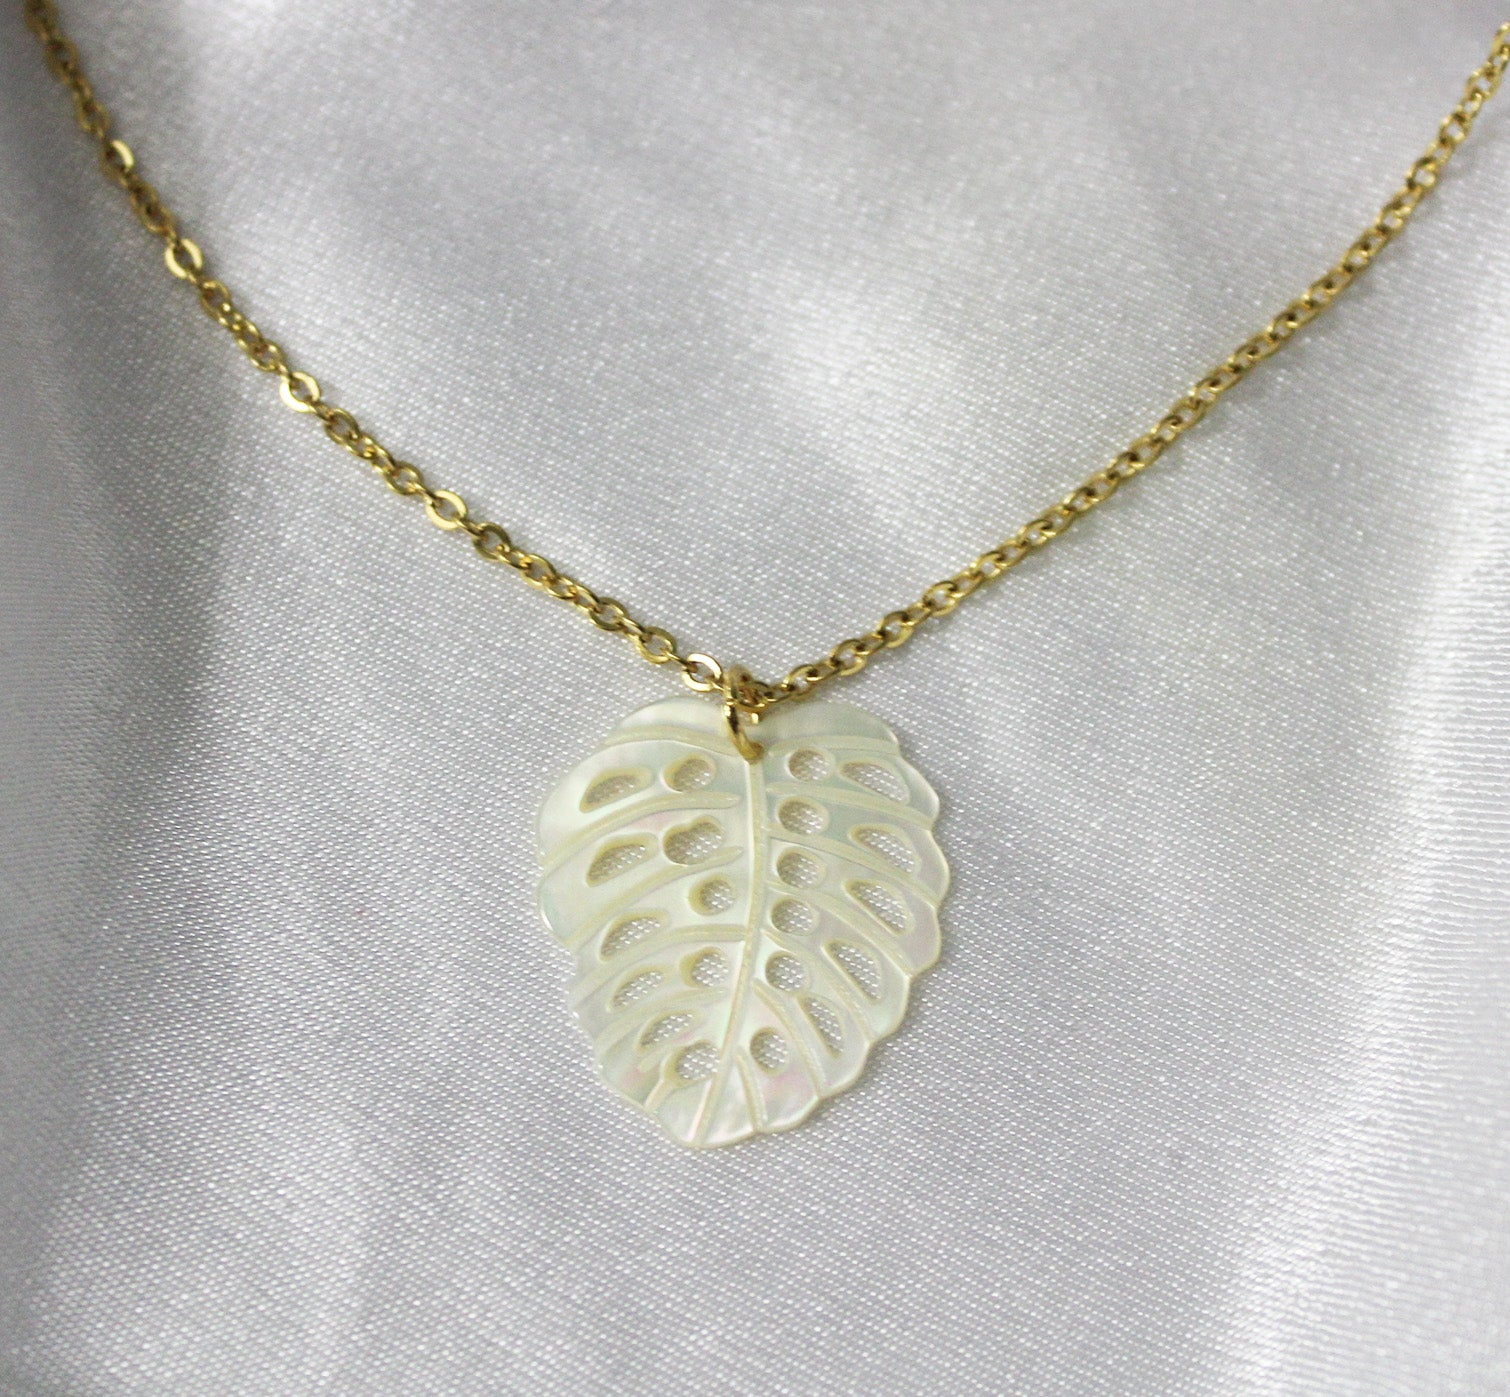 MOTHER OF PEARL CHAIN